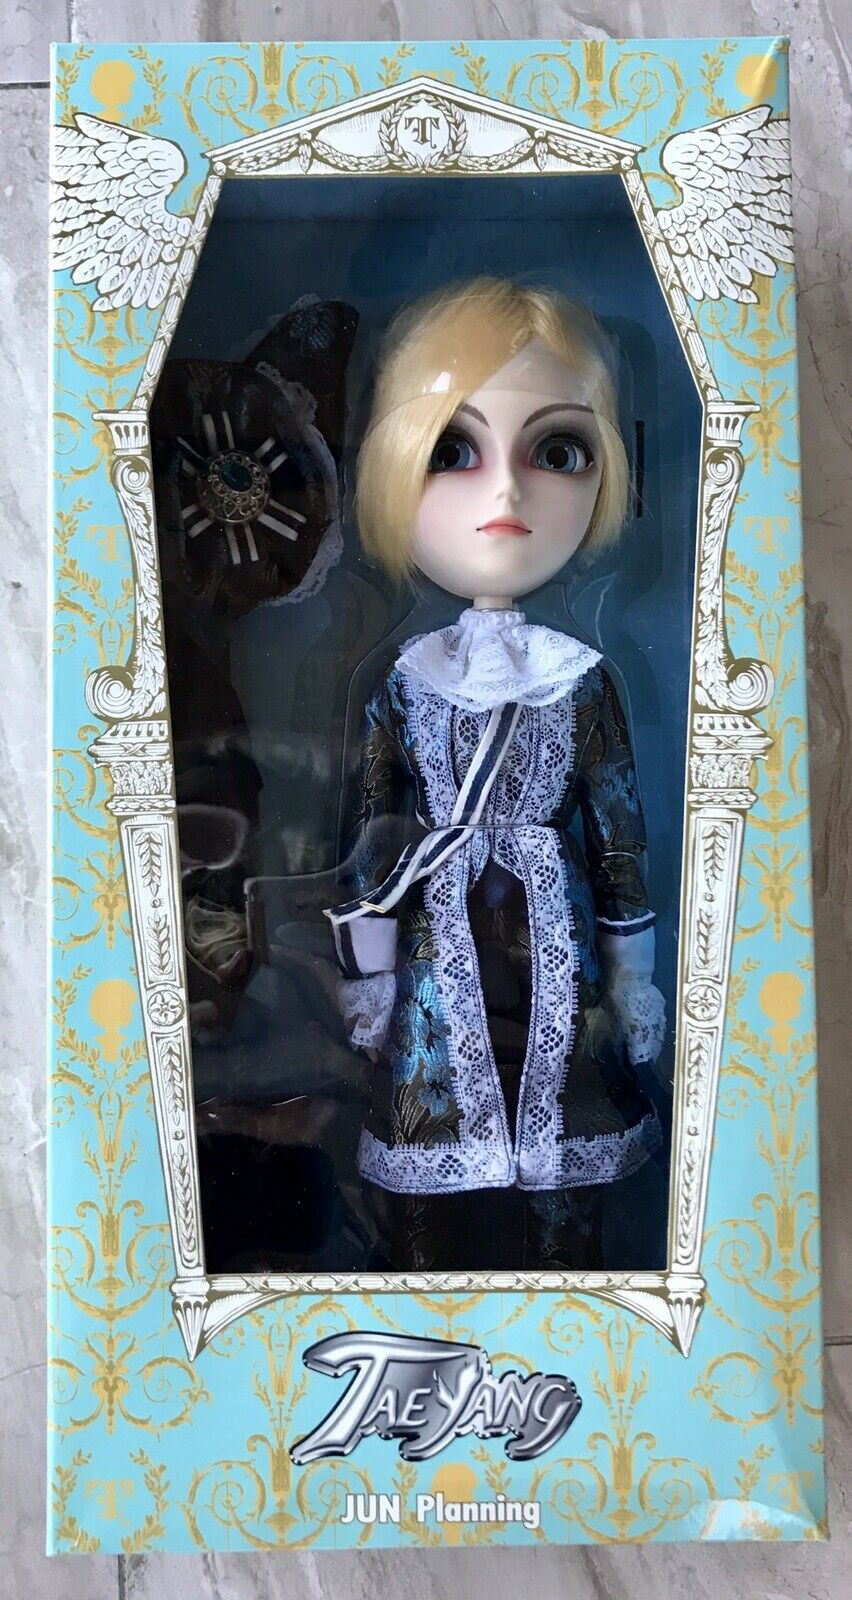 BNIB TAEYANG, PULLIP, JUN PLANNING, F-927 TANTUS CAPTAIN DOLL HARD TO FIND